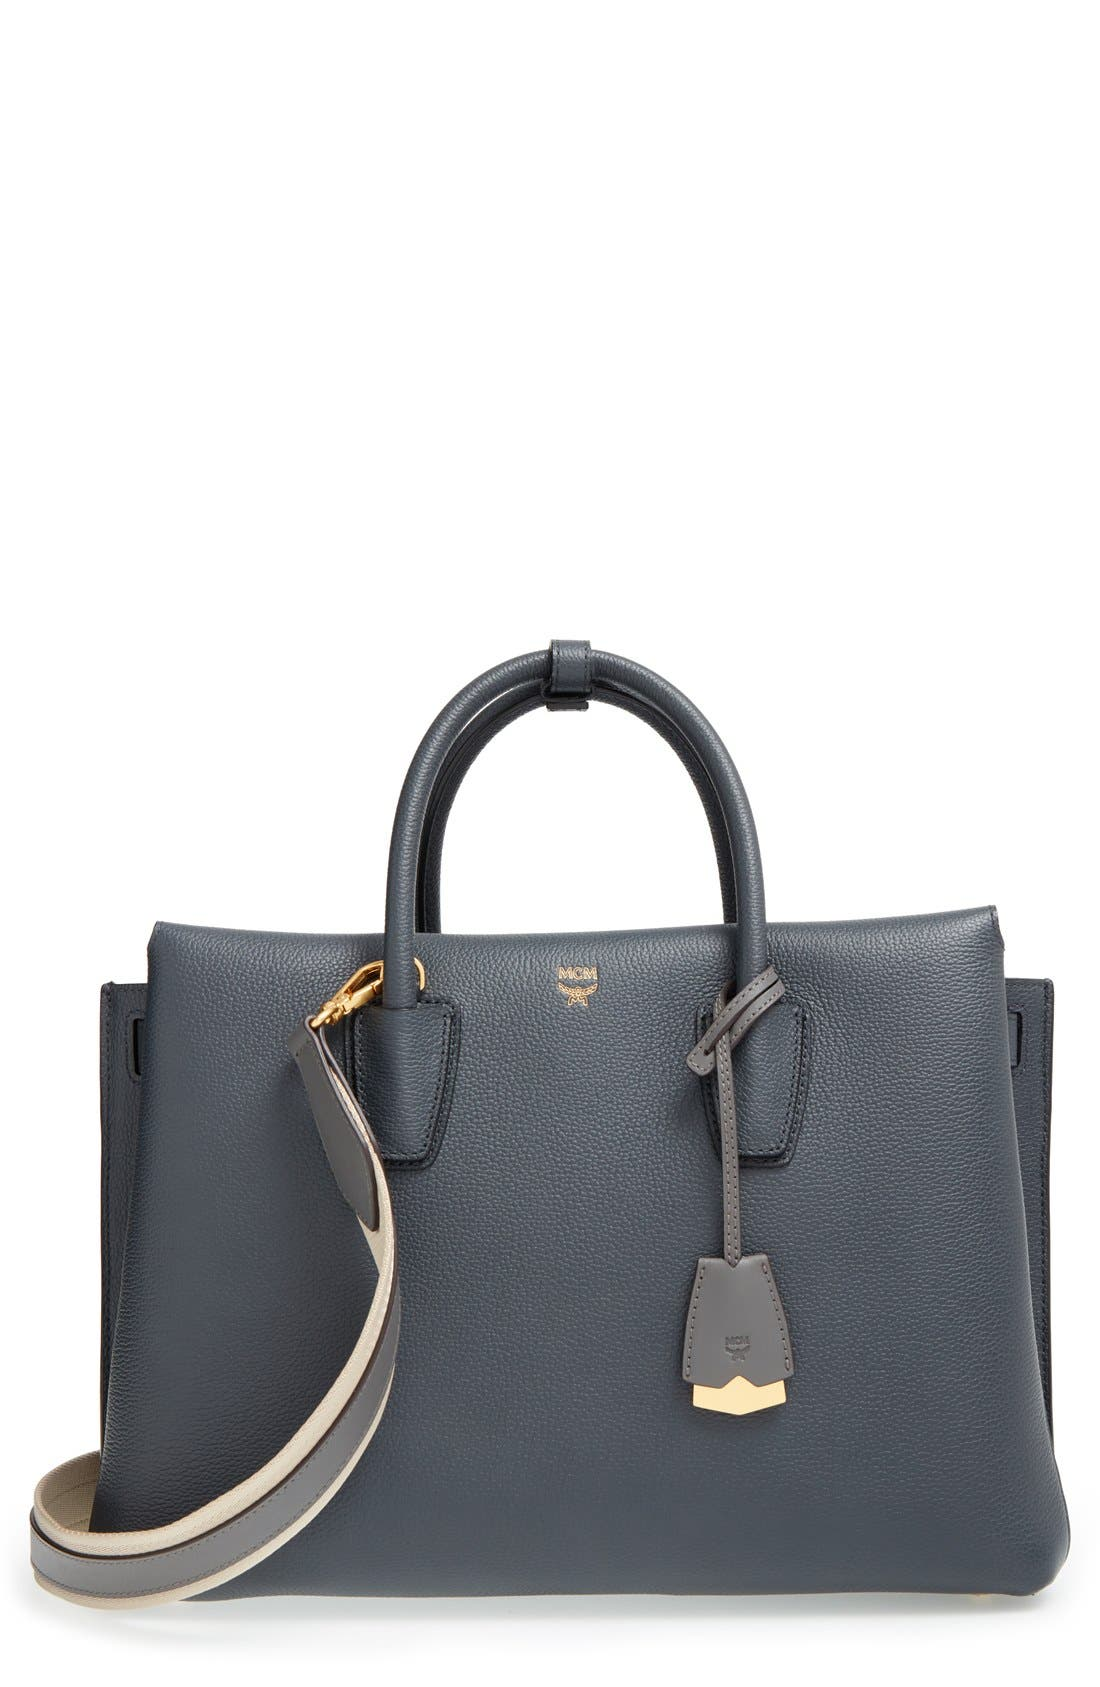 'Large Milla' Leather Tote,                             Main thumbnail 1, color,                             020